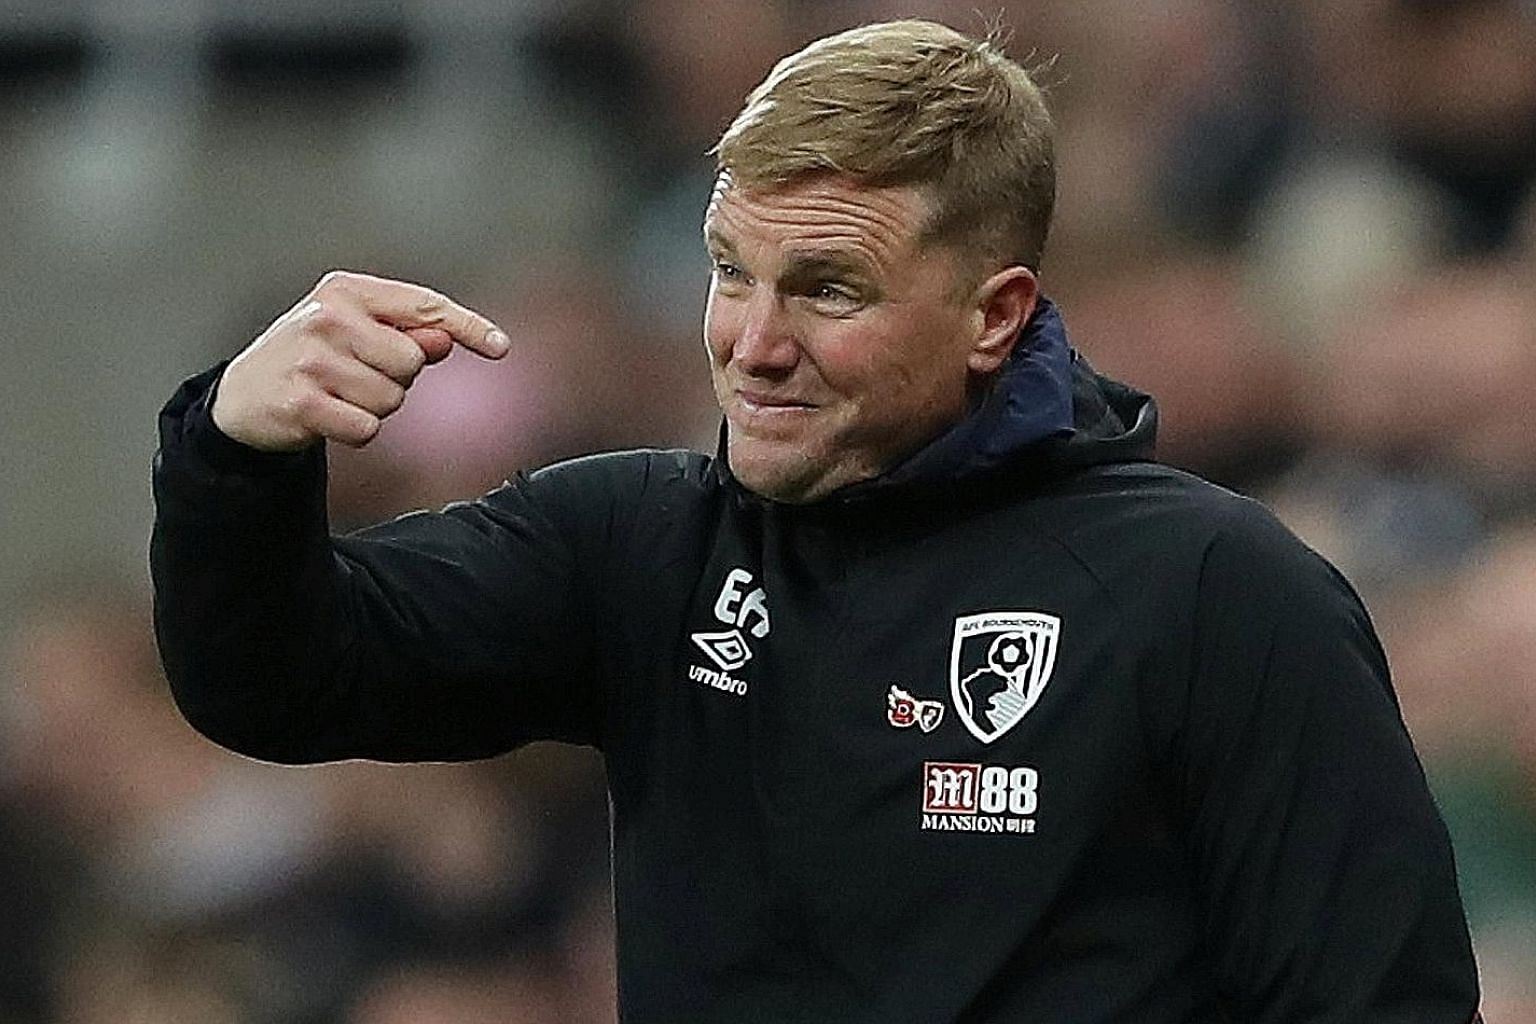 Manager Eddie Howe has led Bournemouth, who are eighth, to historic wins over Arsenal, Chelsea, Liverpool and United in recent years.